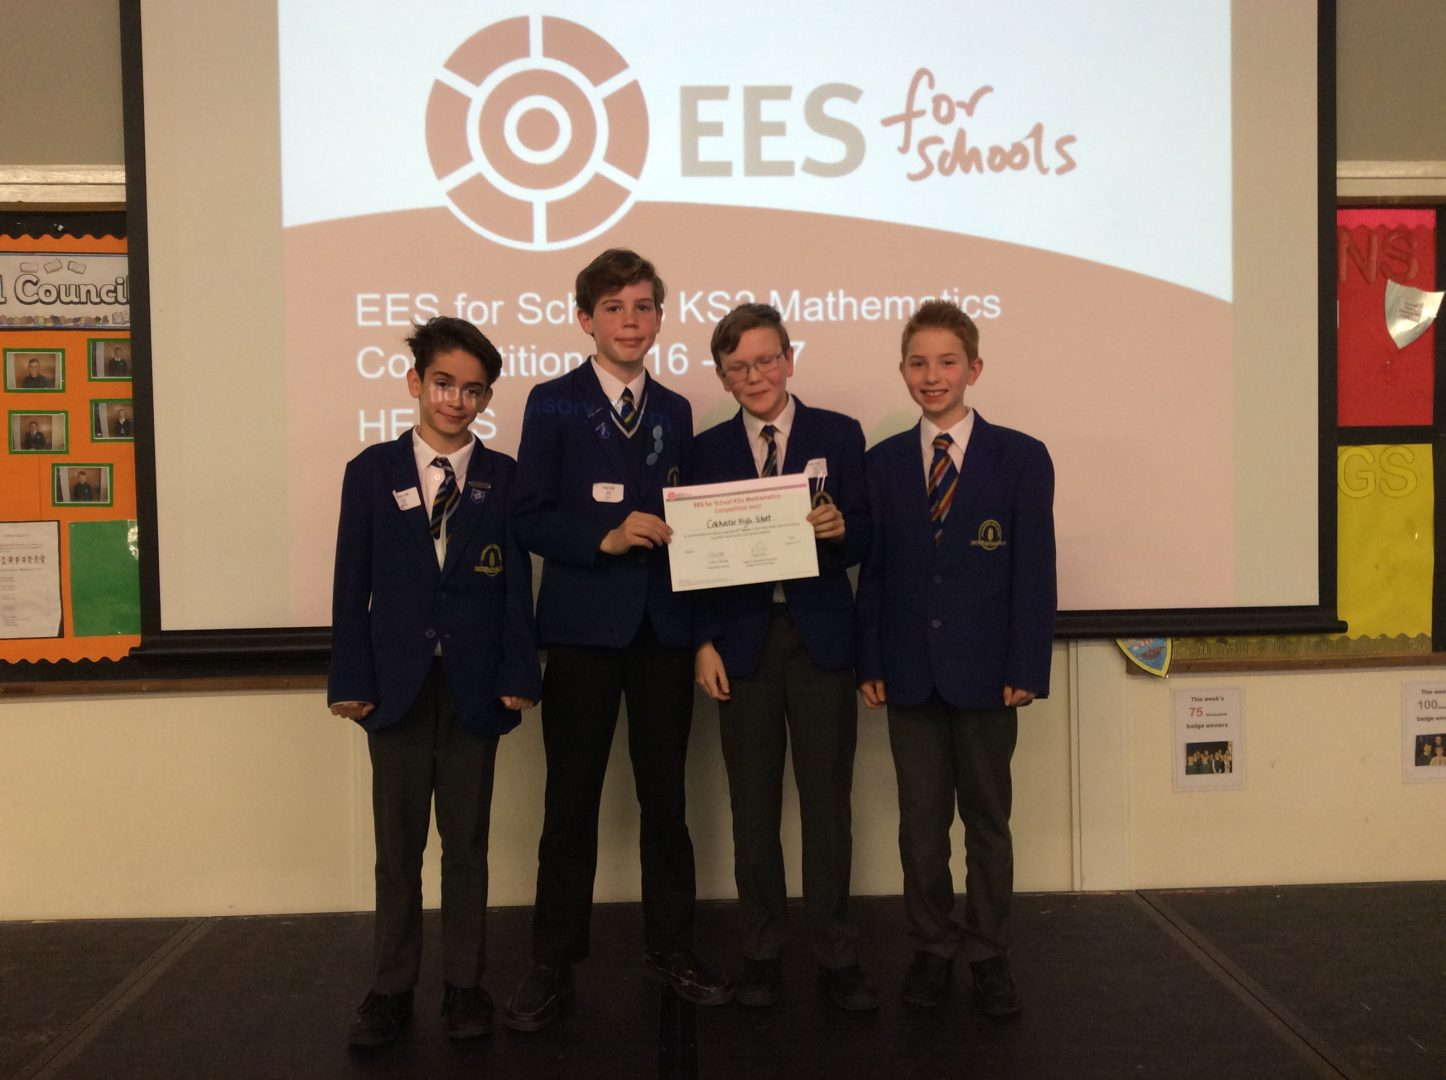 CHS Pupils Gain 2nd Place at the EES for Schools KS2 Mathematics Competition 2017